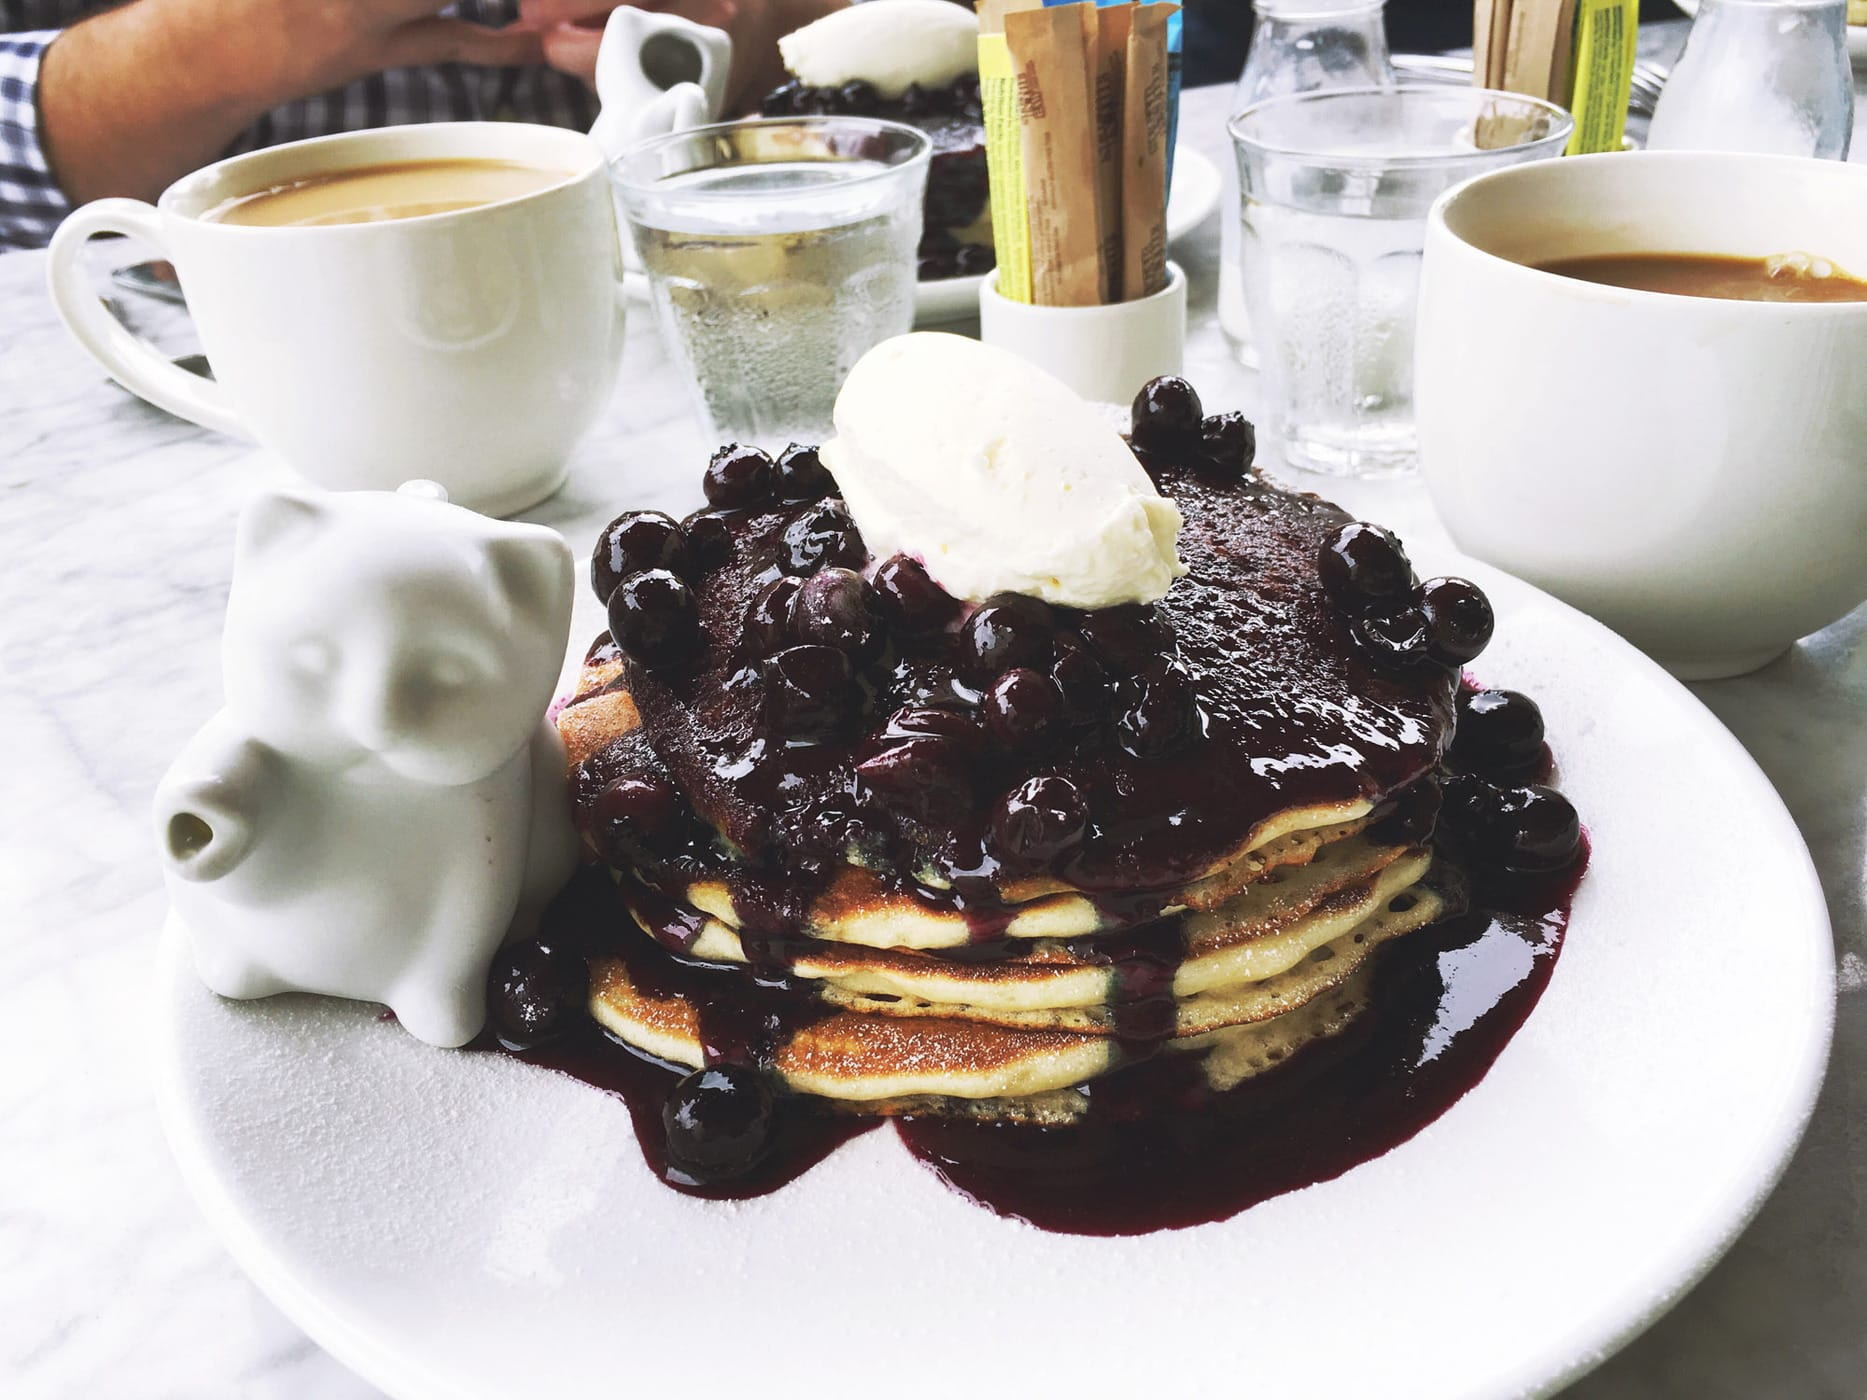 Buttermilk pancakes with blueberry maple compote, crème fraiche, and a kitten syrup dispenser at Launderette in Austin, Texas.